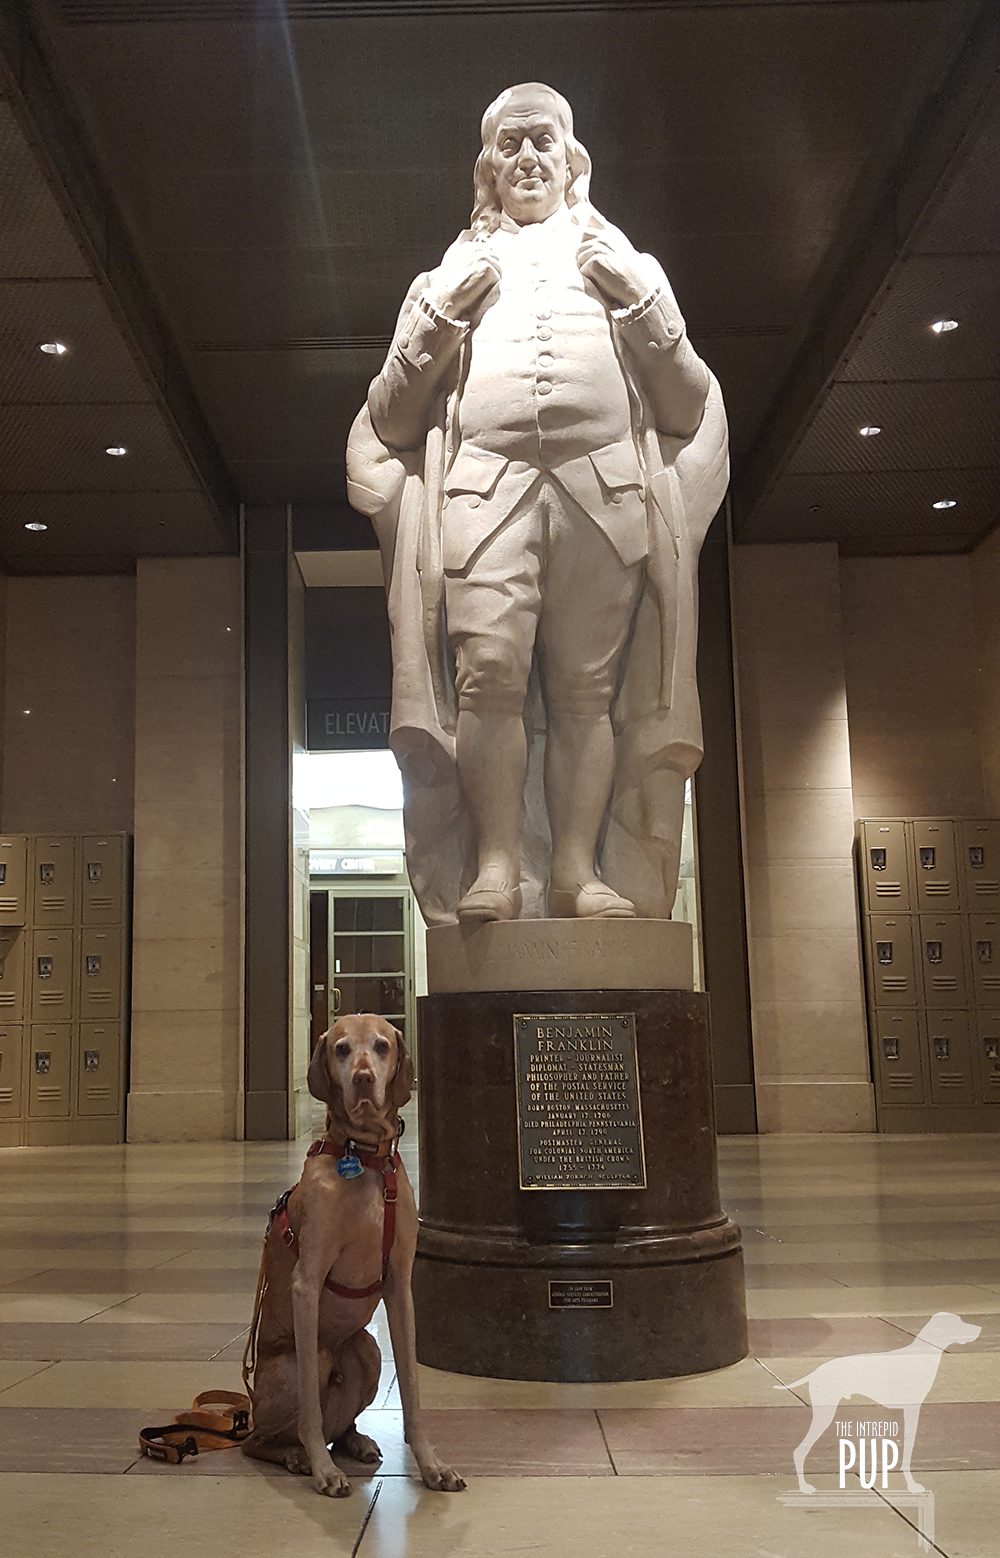 Tavish with Ben Franklin